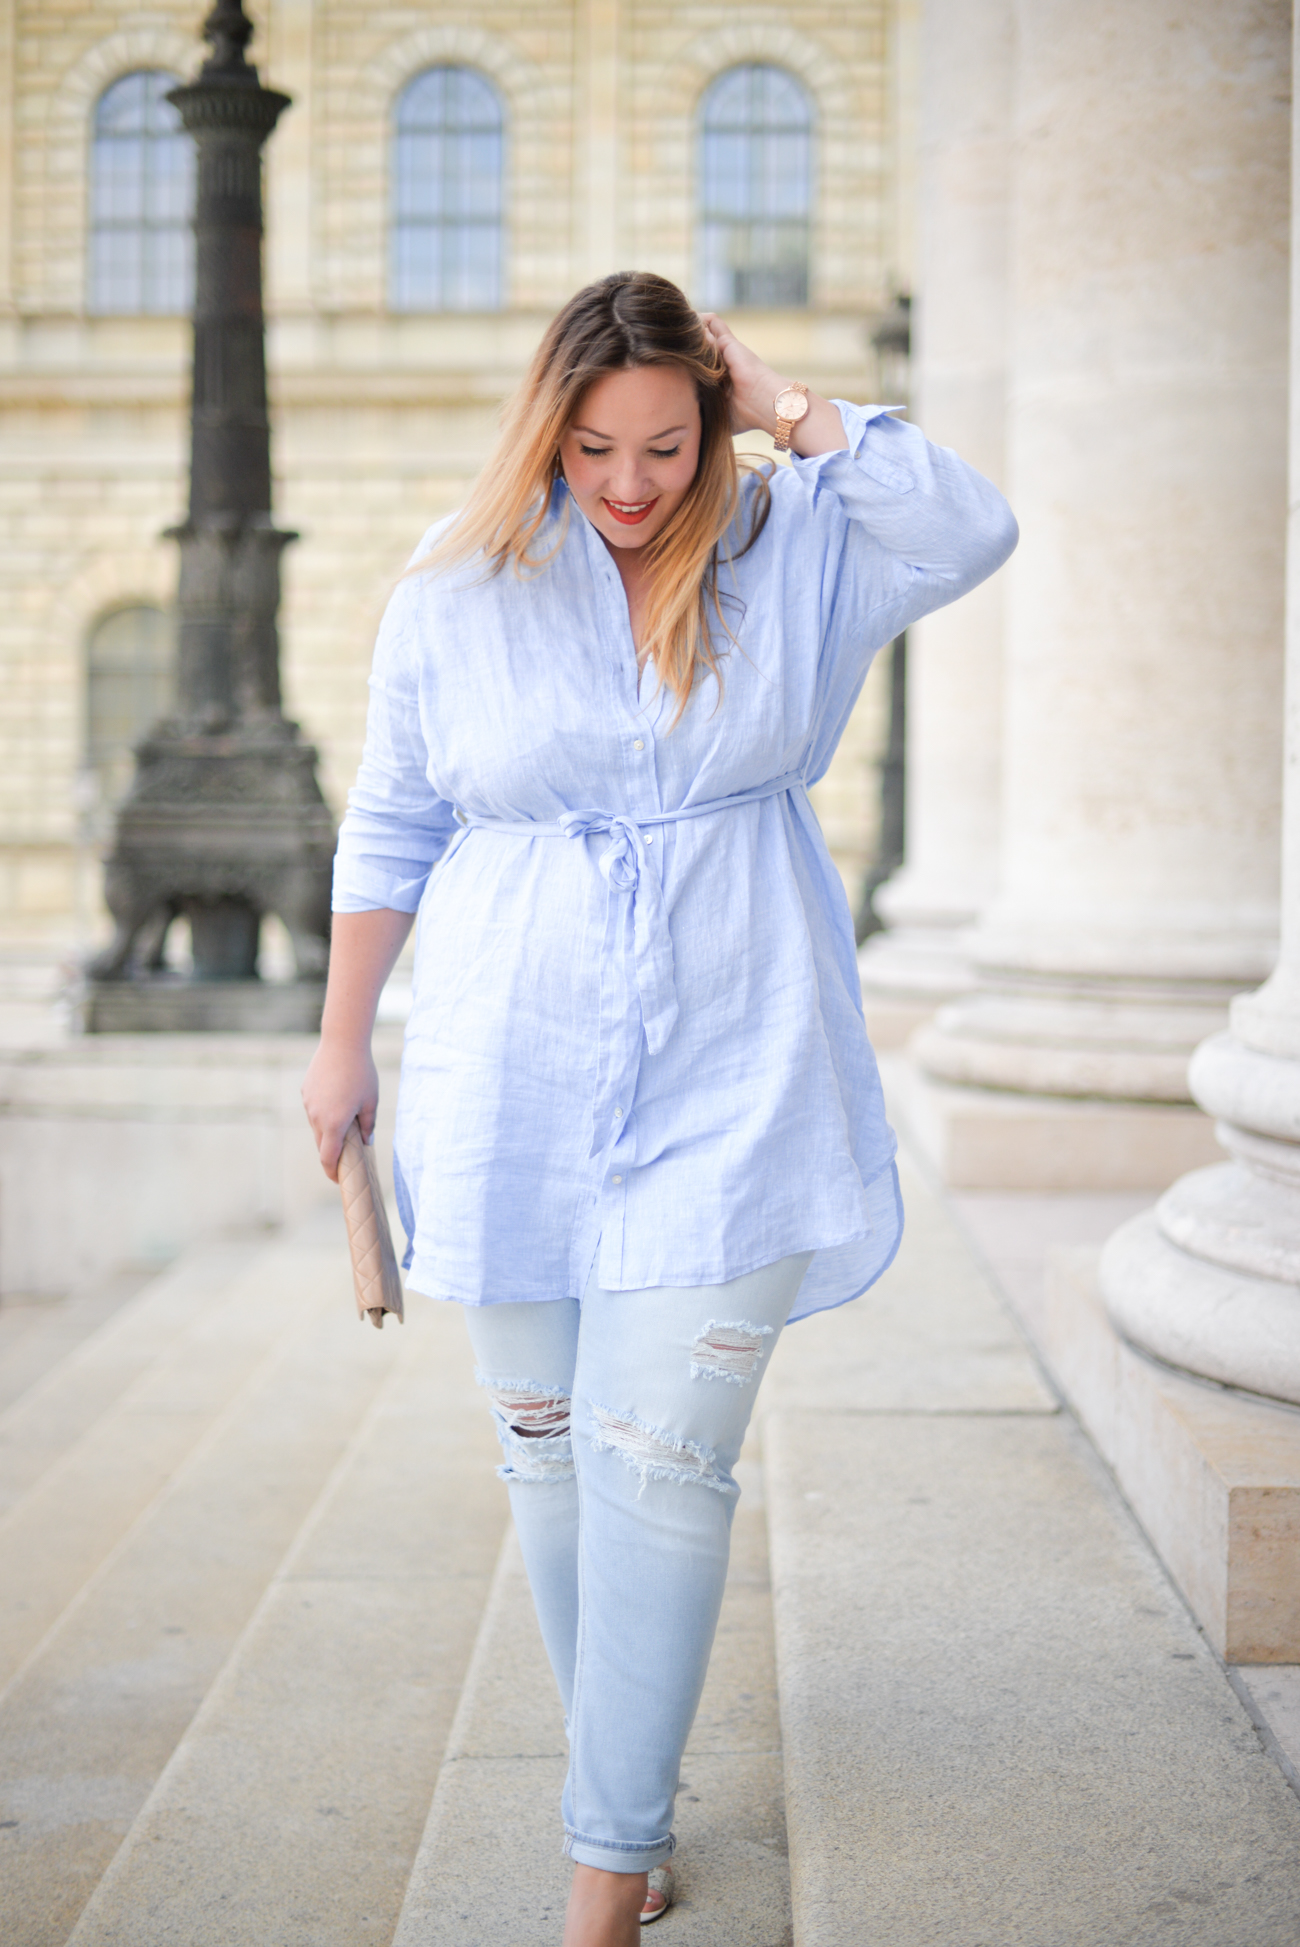 Plussize Blog_Blogger_Fashion Blog München_Theskinnyandthecurvyone_Plus-Size Blog Deutschland_Curvy Blogger_German Blogger_German Plus-Size (12 von 21)